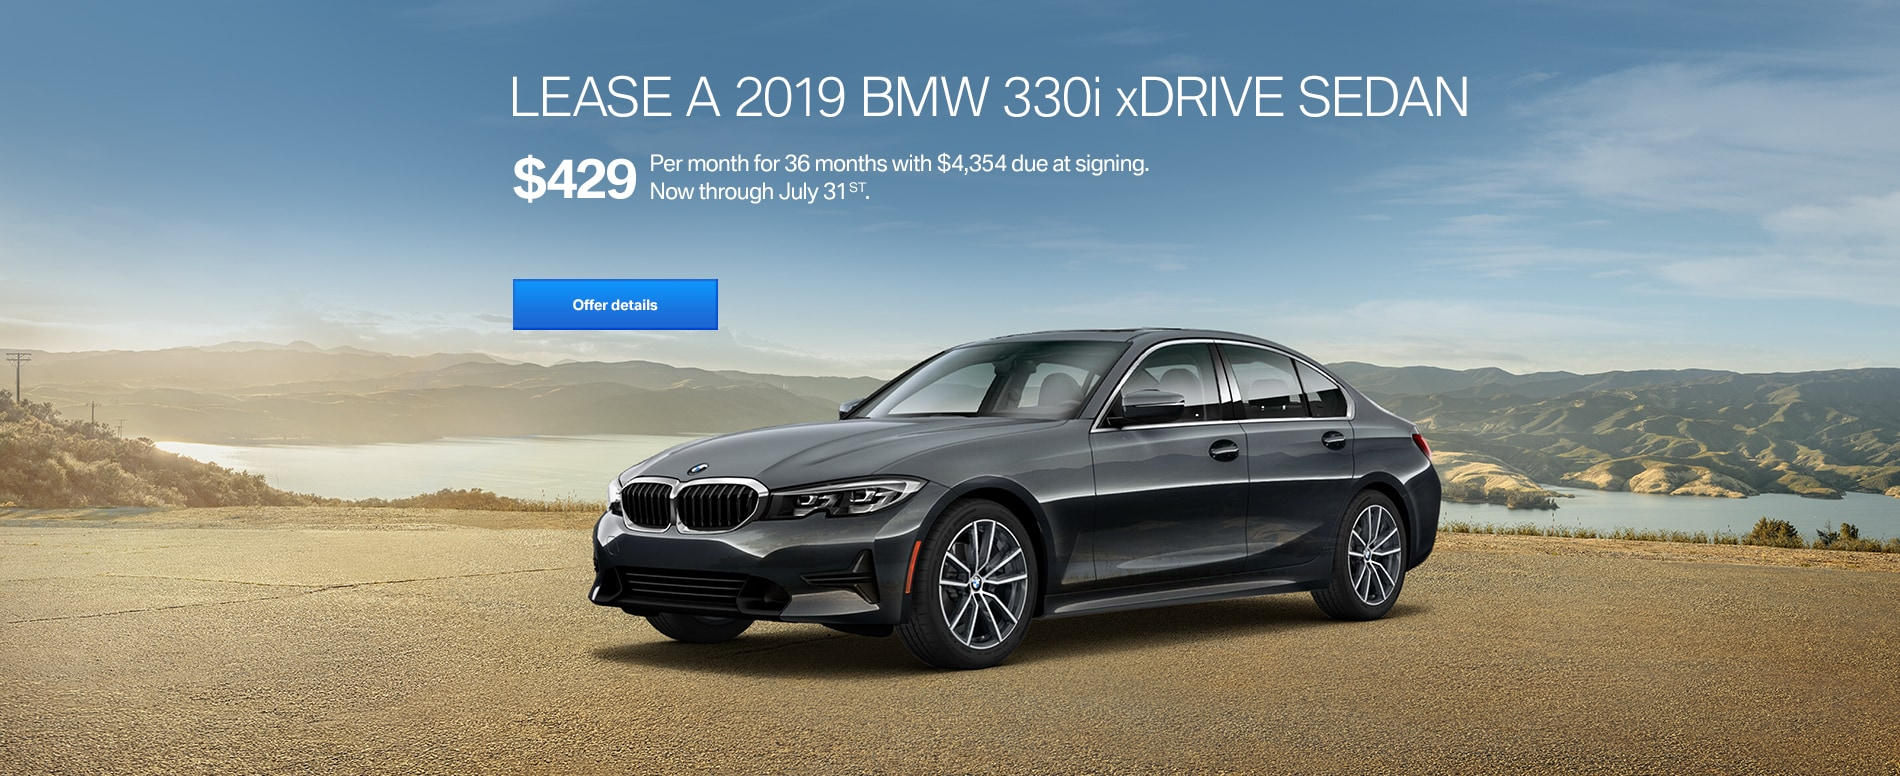 Bmw Dealer Near Me >> Bmw Dealership In Wilkes Barre Pa Napleton Bmw Of Wyoming Valley